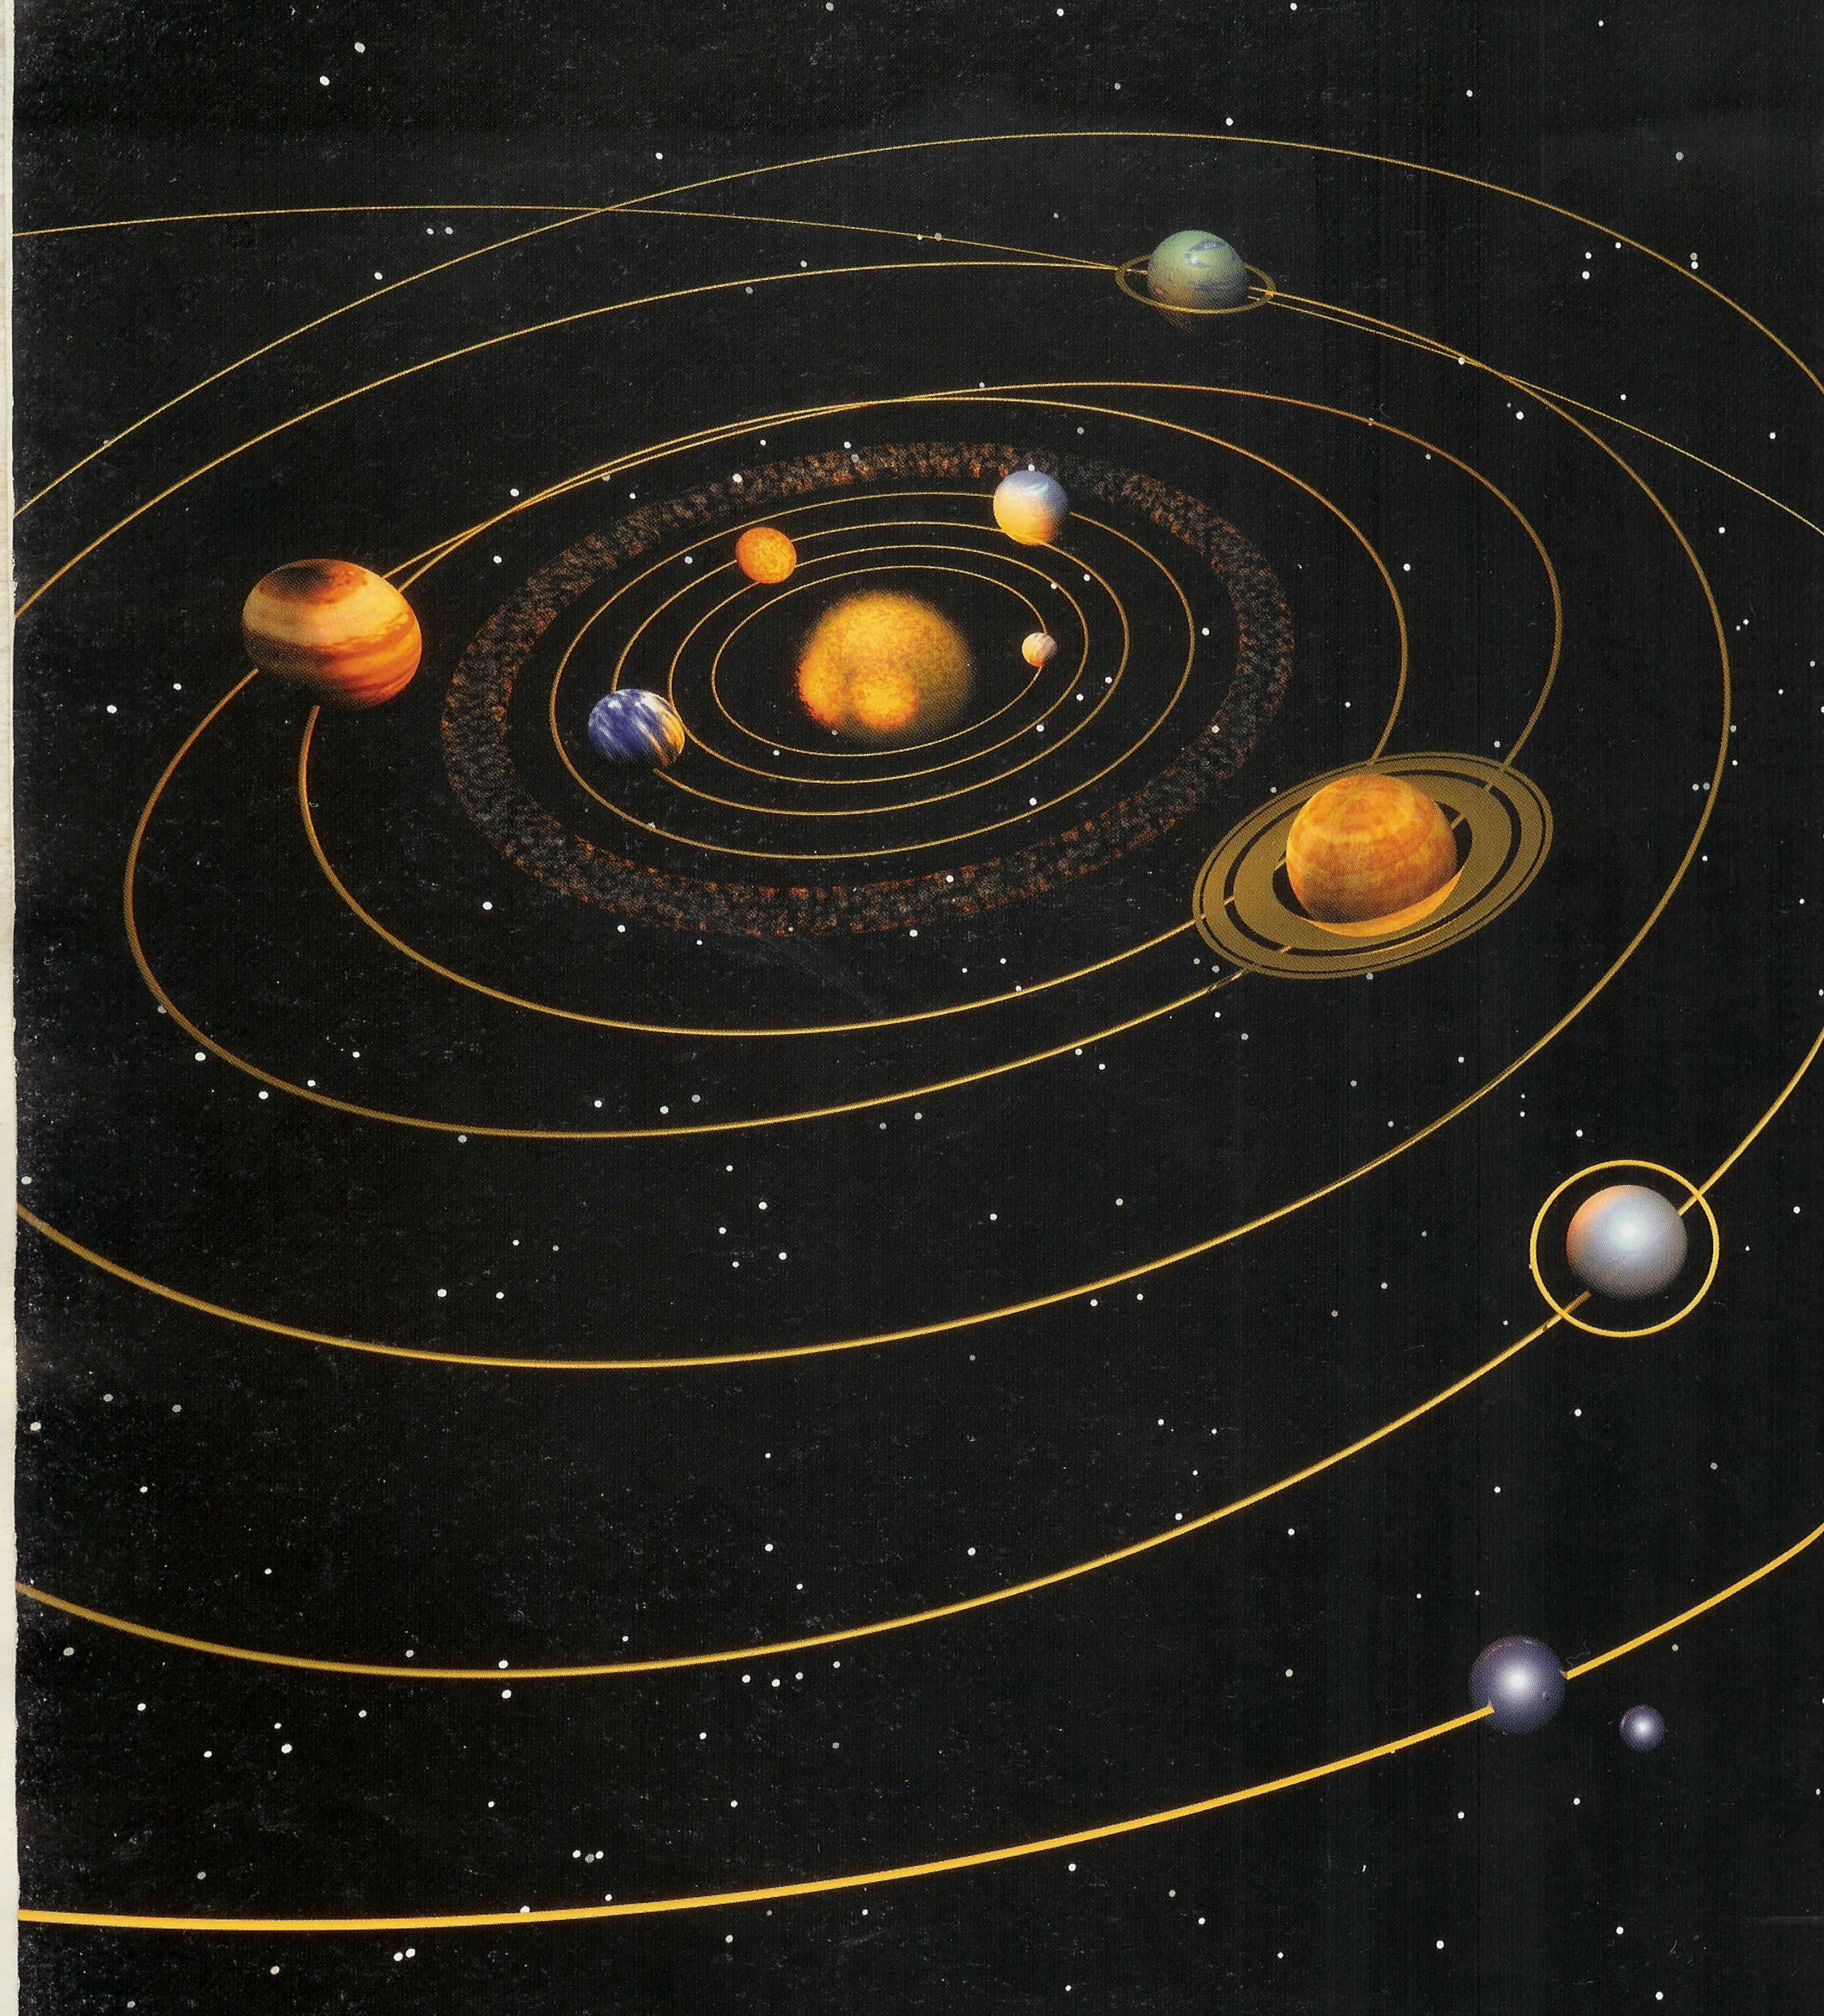 space diagram dividing network for speakers schematic deep planets orbits and asteroid belt